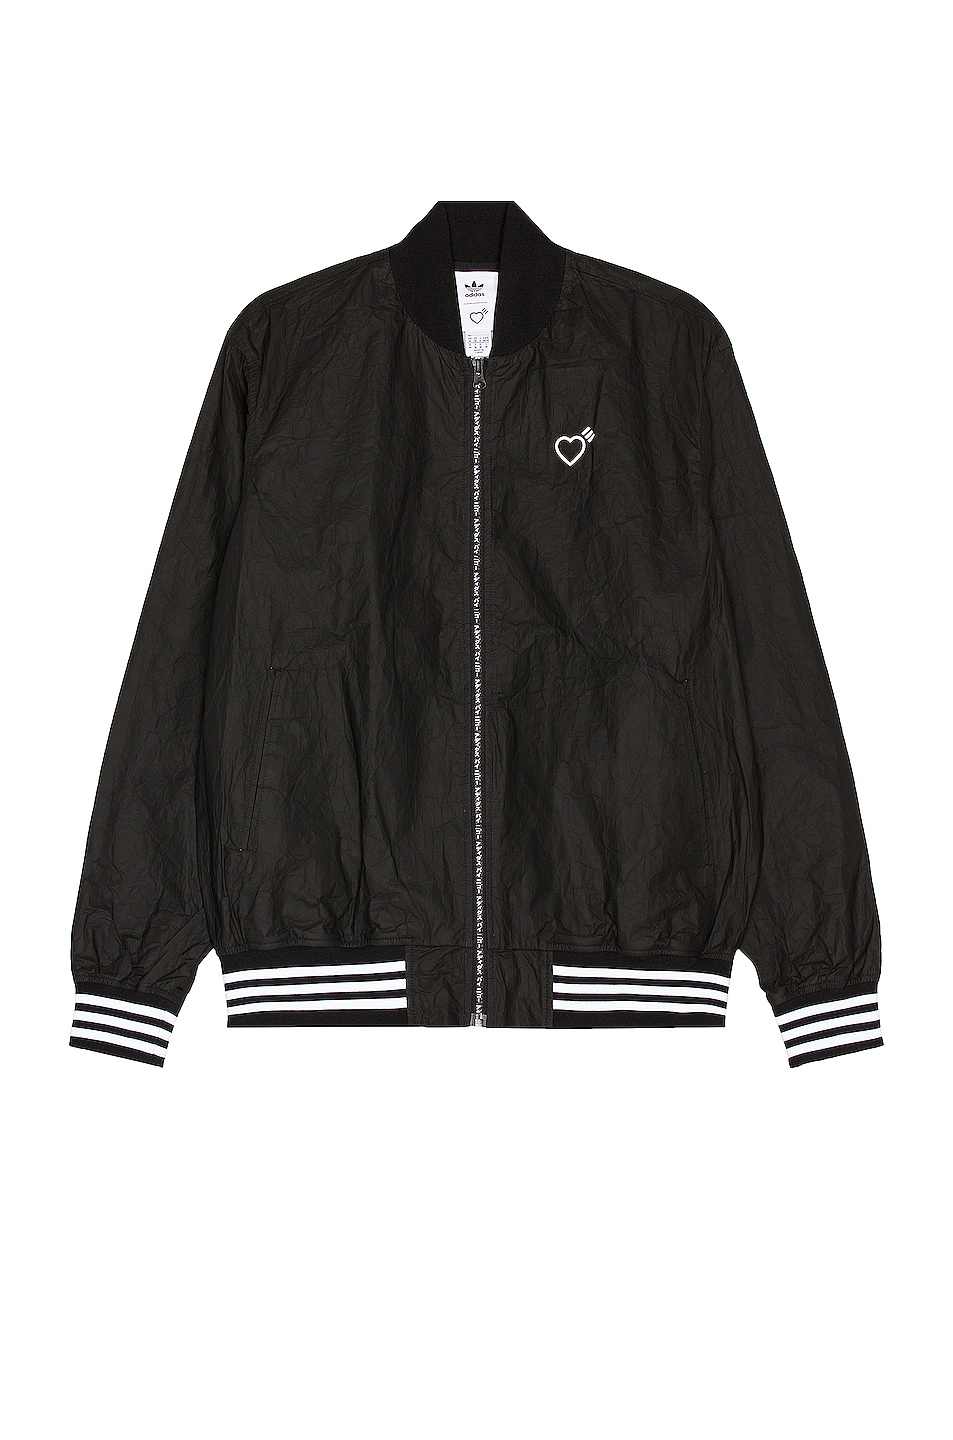 Image 1 of adidas x HUMAN MADE Tyvek Track Top in Black